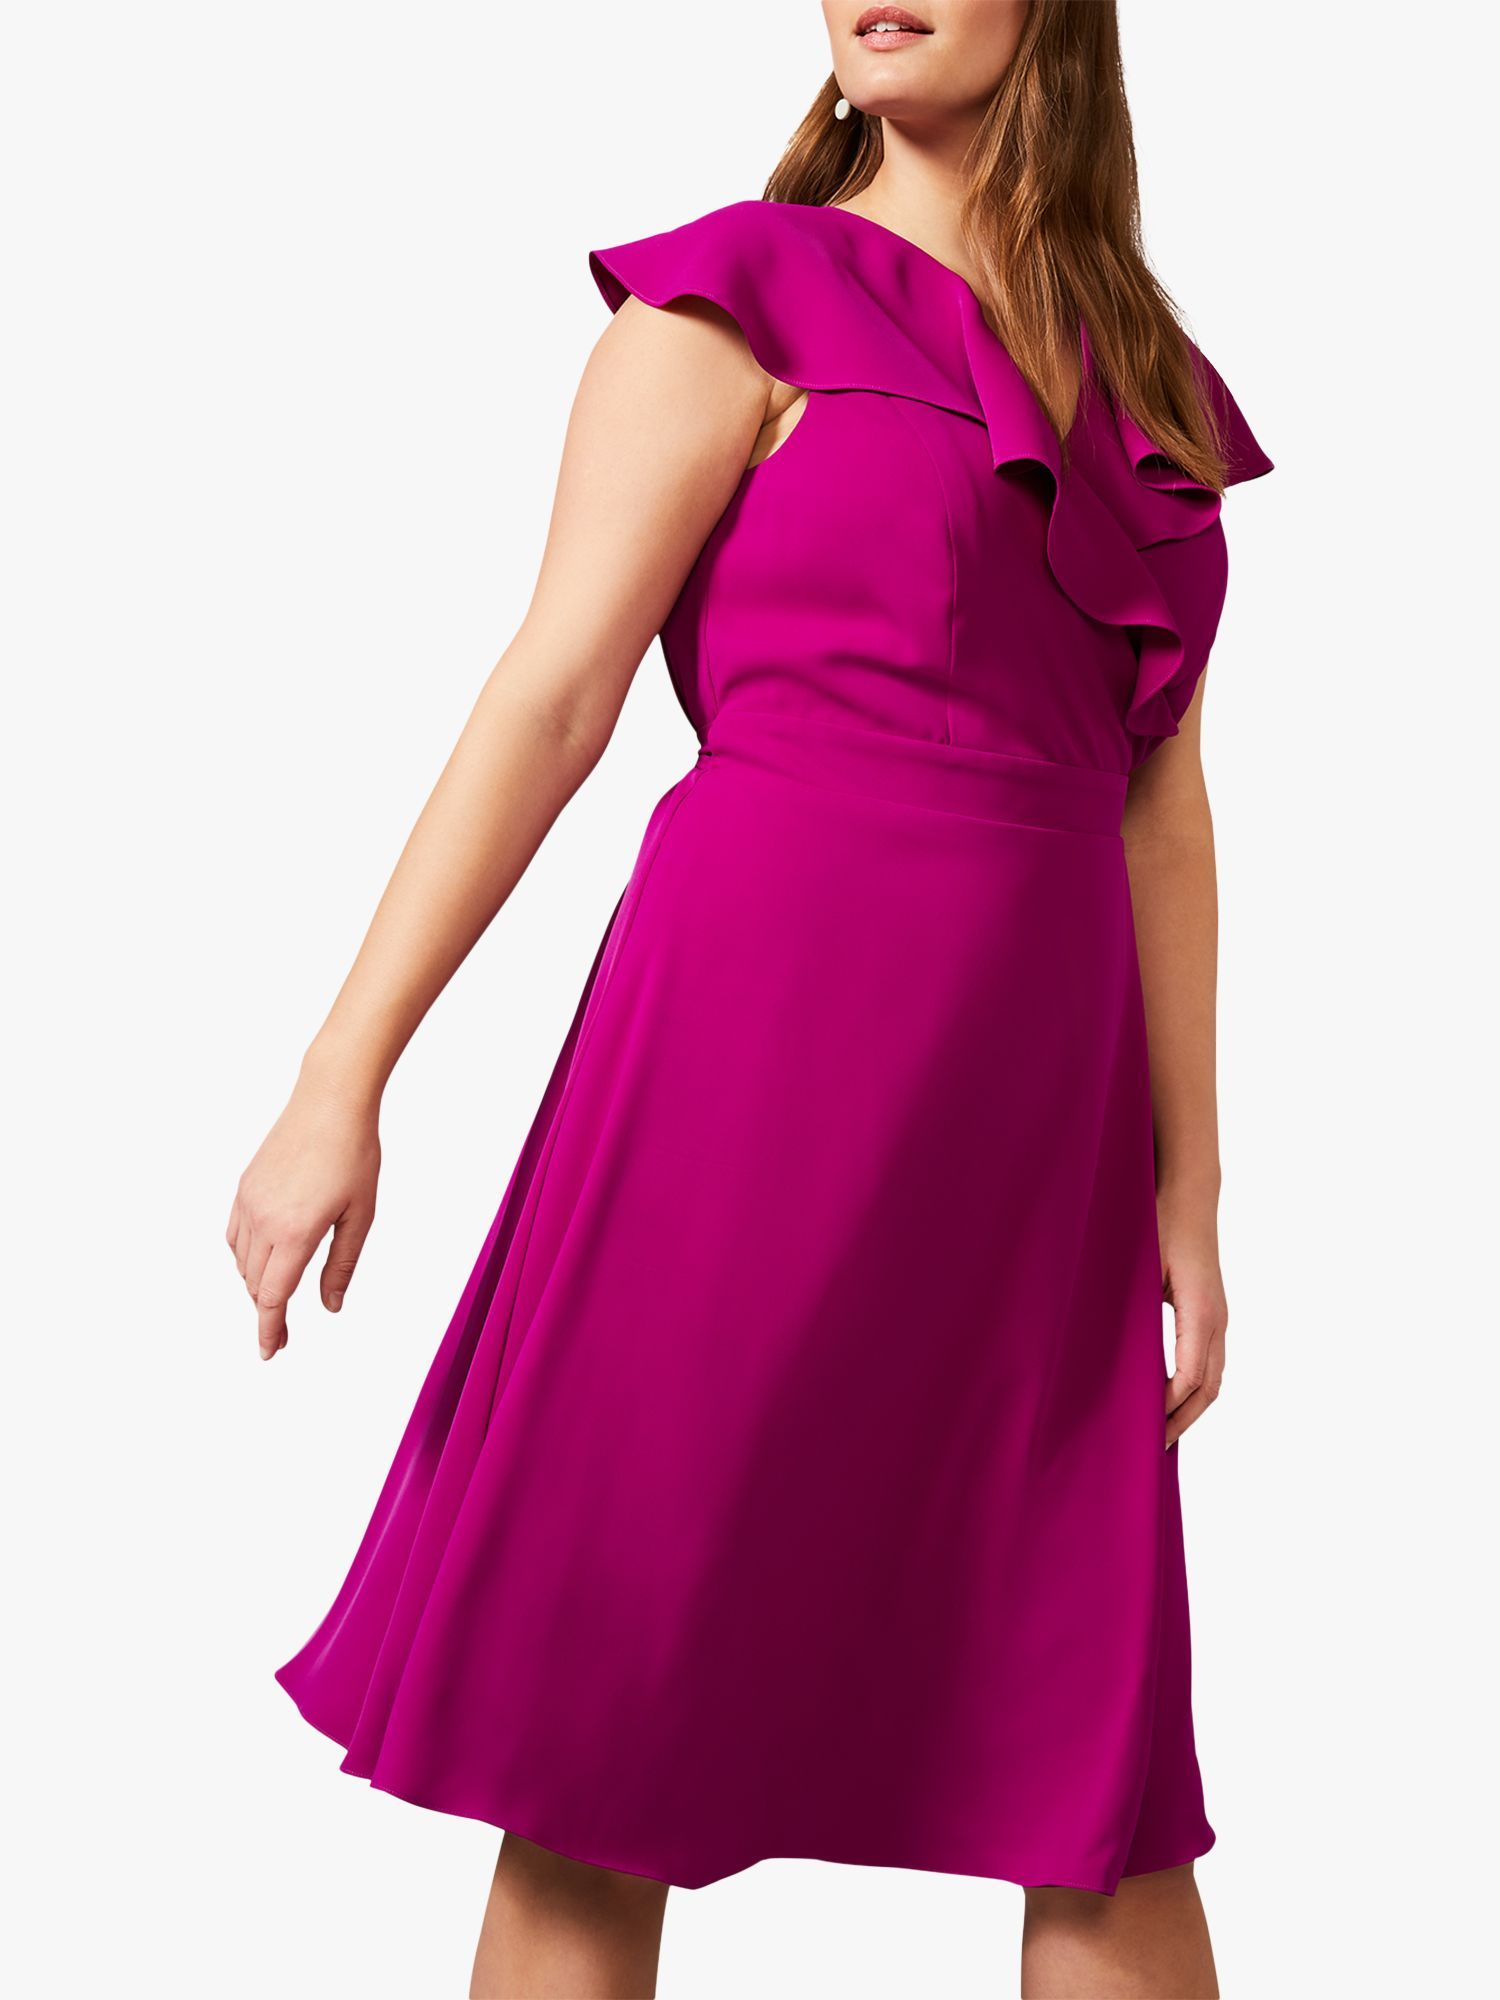 A dress you can turn to whatever the occasion, this Rachel style from Studio 8 offers just that. Featuring a vibrant hue and a soft ruffle finish, pair yours with delicate jewellery, a sleek updo and strappy heels.